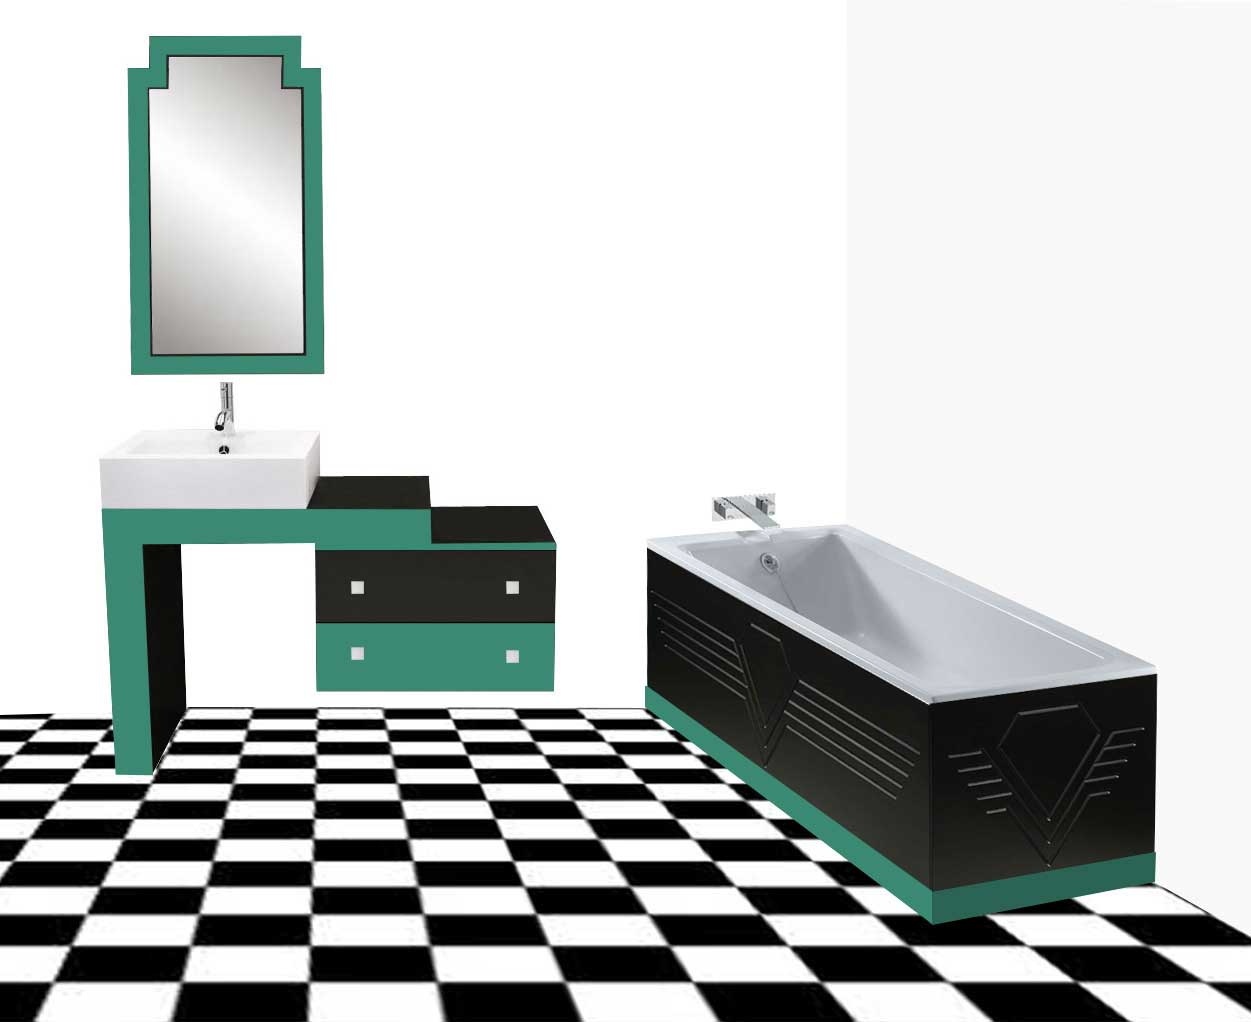 New art deco bathrooms vanity units wall units fitted bathroom interiors furniture for Toilet deco